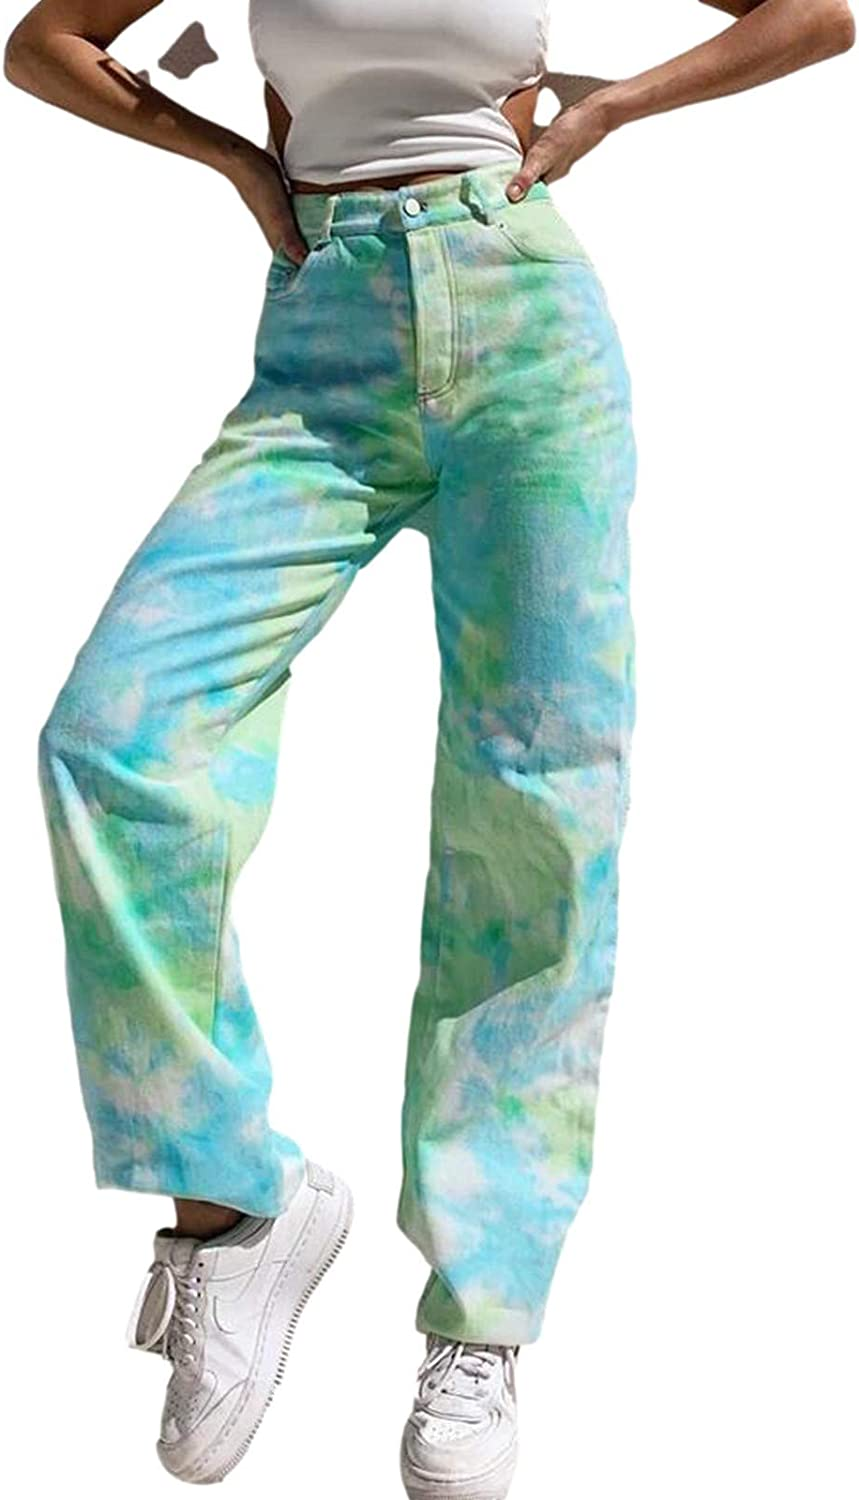 Womens High Waist Tie Dye Jeans Wide Leg Ripped Denim Pants Classic Straight Y2K Baggy Casual Jeans Pants